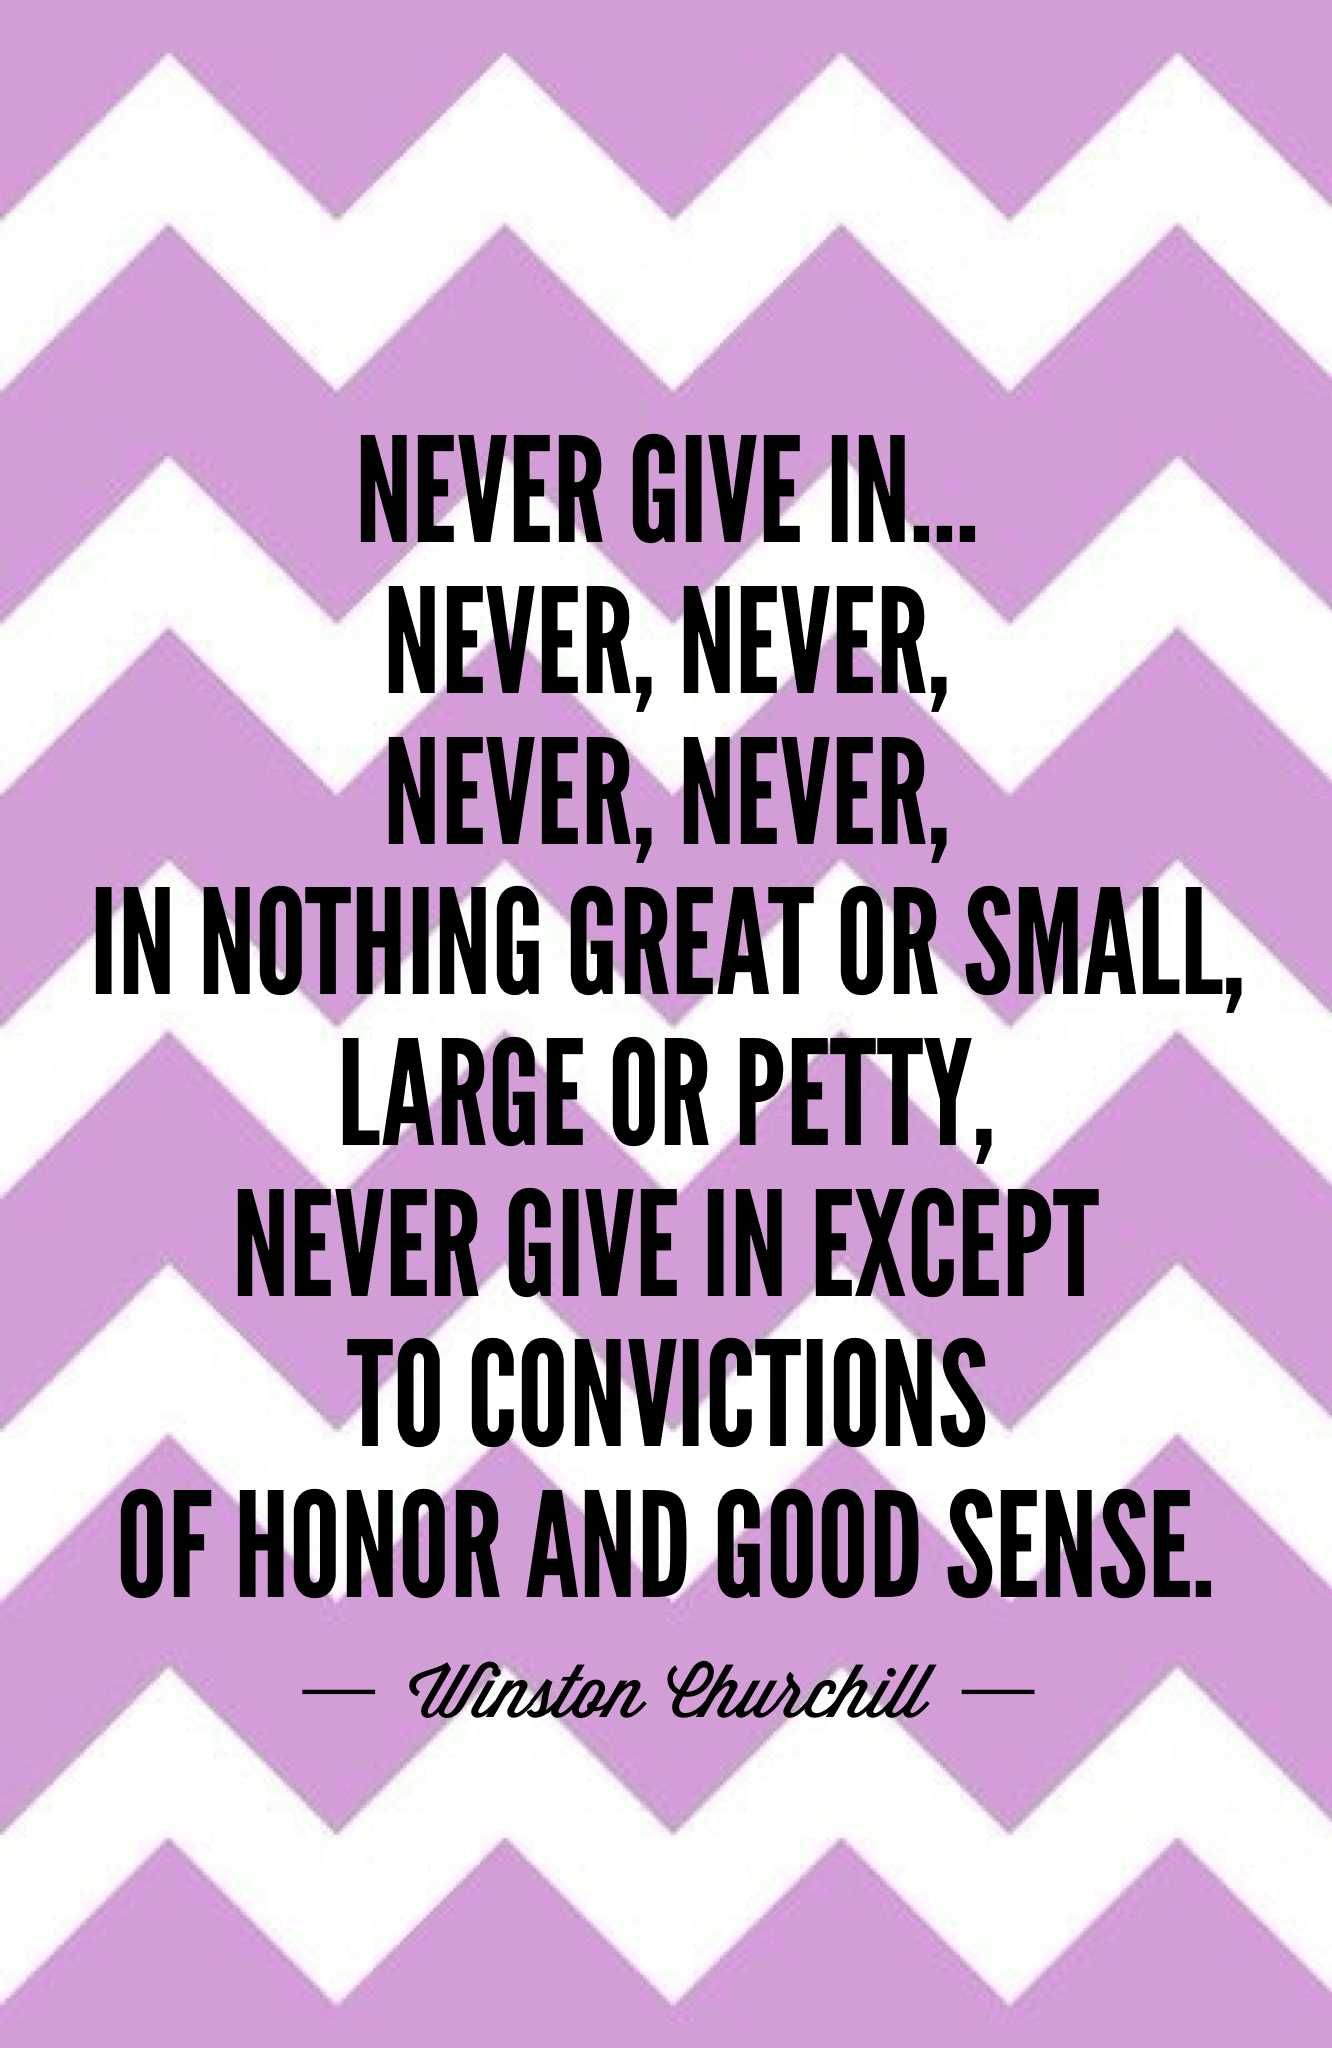 Never Give In Never Never Never Never In Nothing Great Or Small Large Or Petty Never Give In Except To Convictions Of Honor And Good Sense W Citation